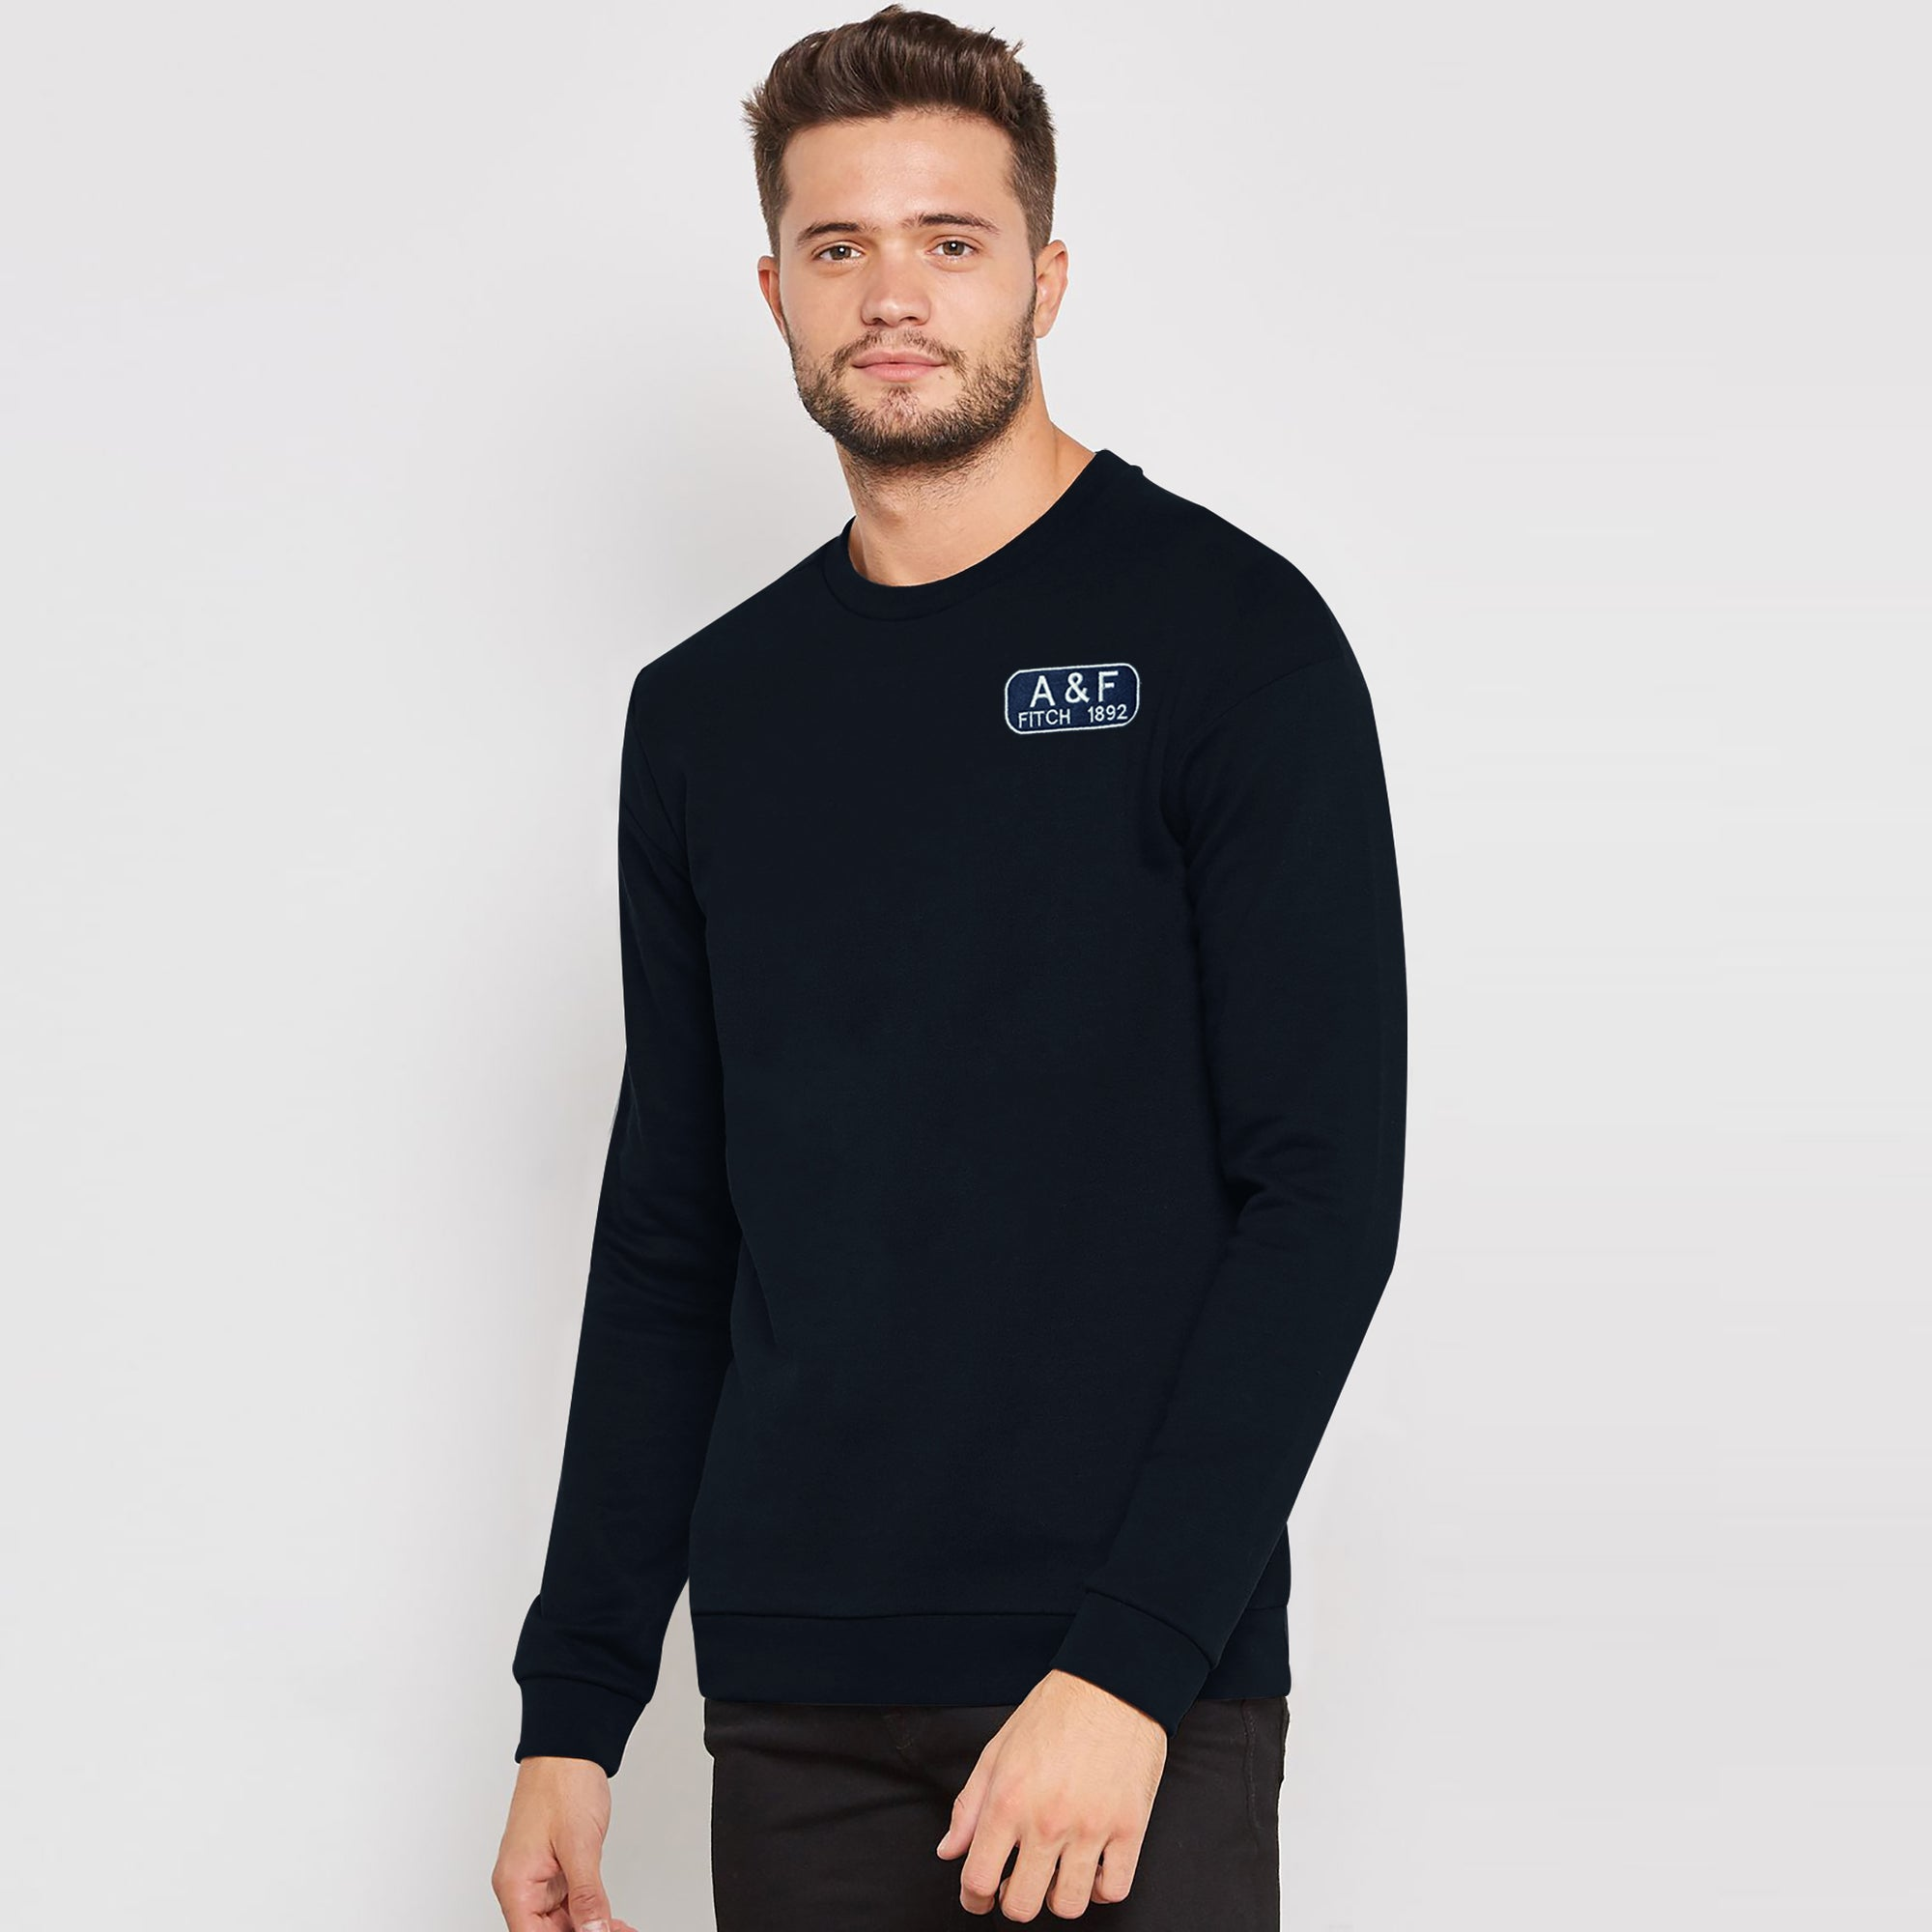 A&F Fleece Crew Neck Sweatshirt For Men-Dark Navy-BE7494